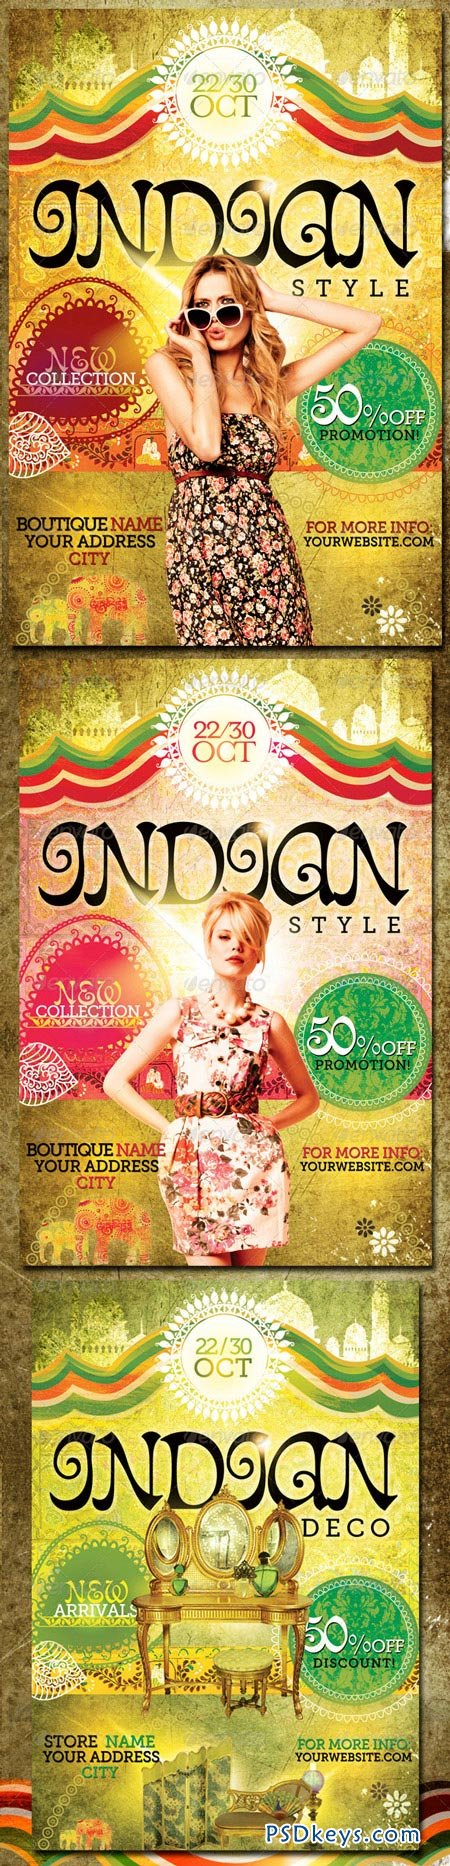 Indian style flyer template 546427